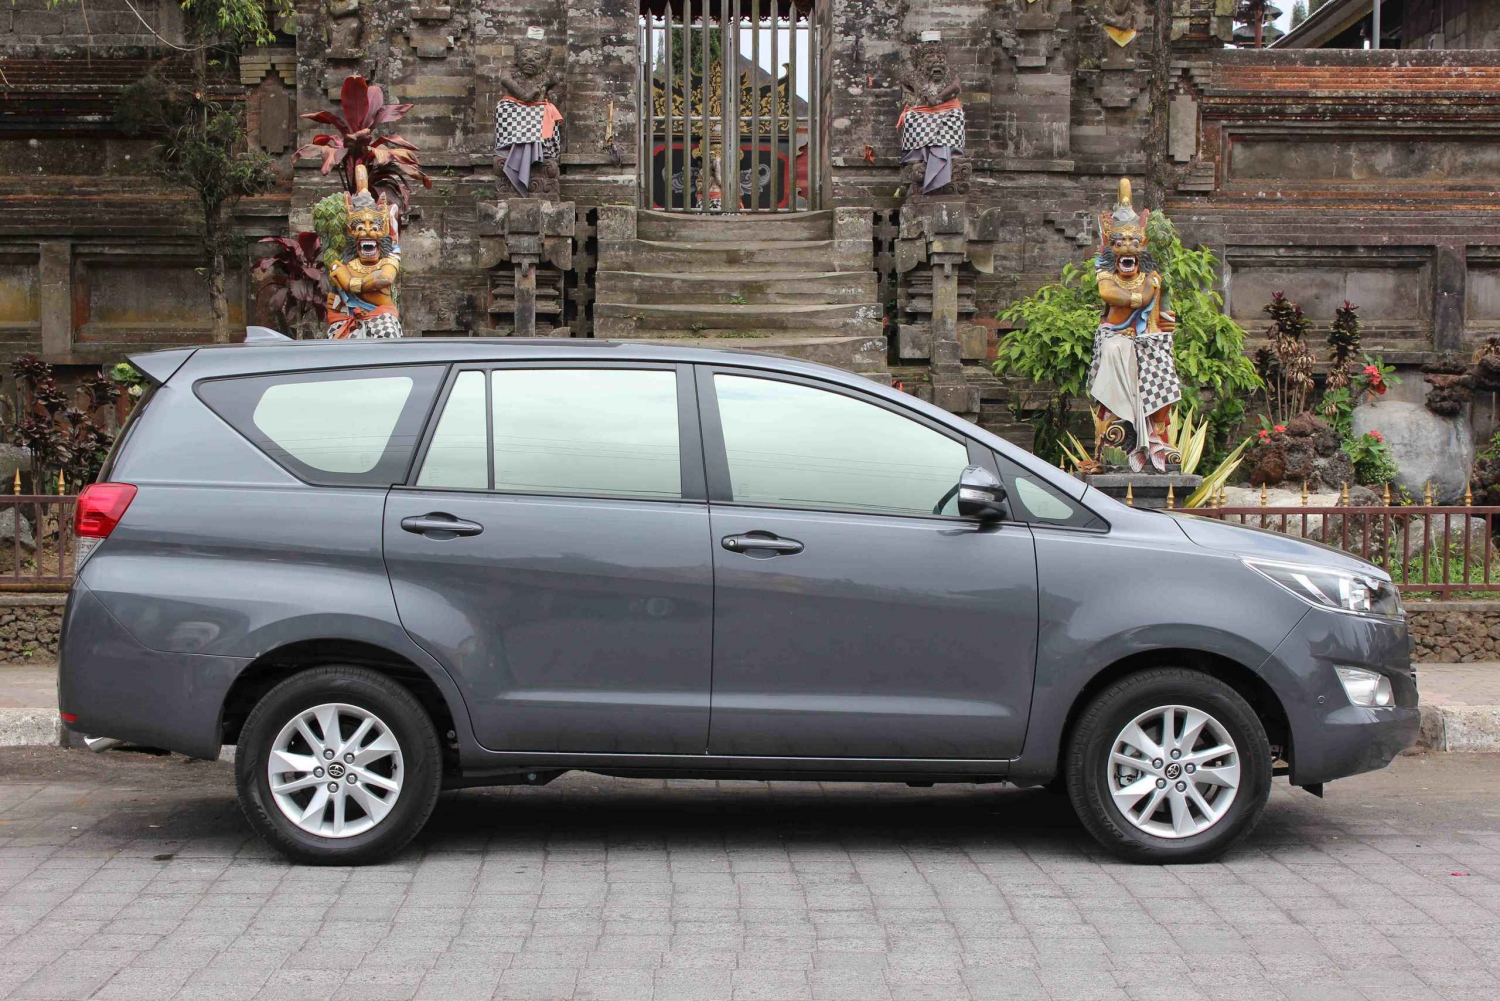 Ngurah Rai Bali Airport Private Transfer